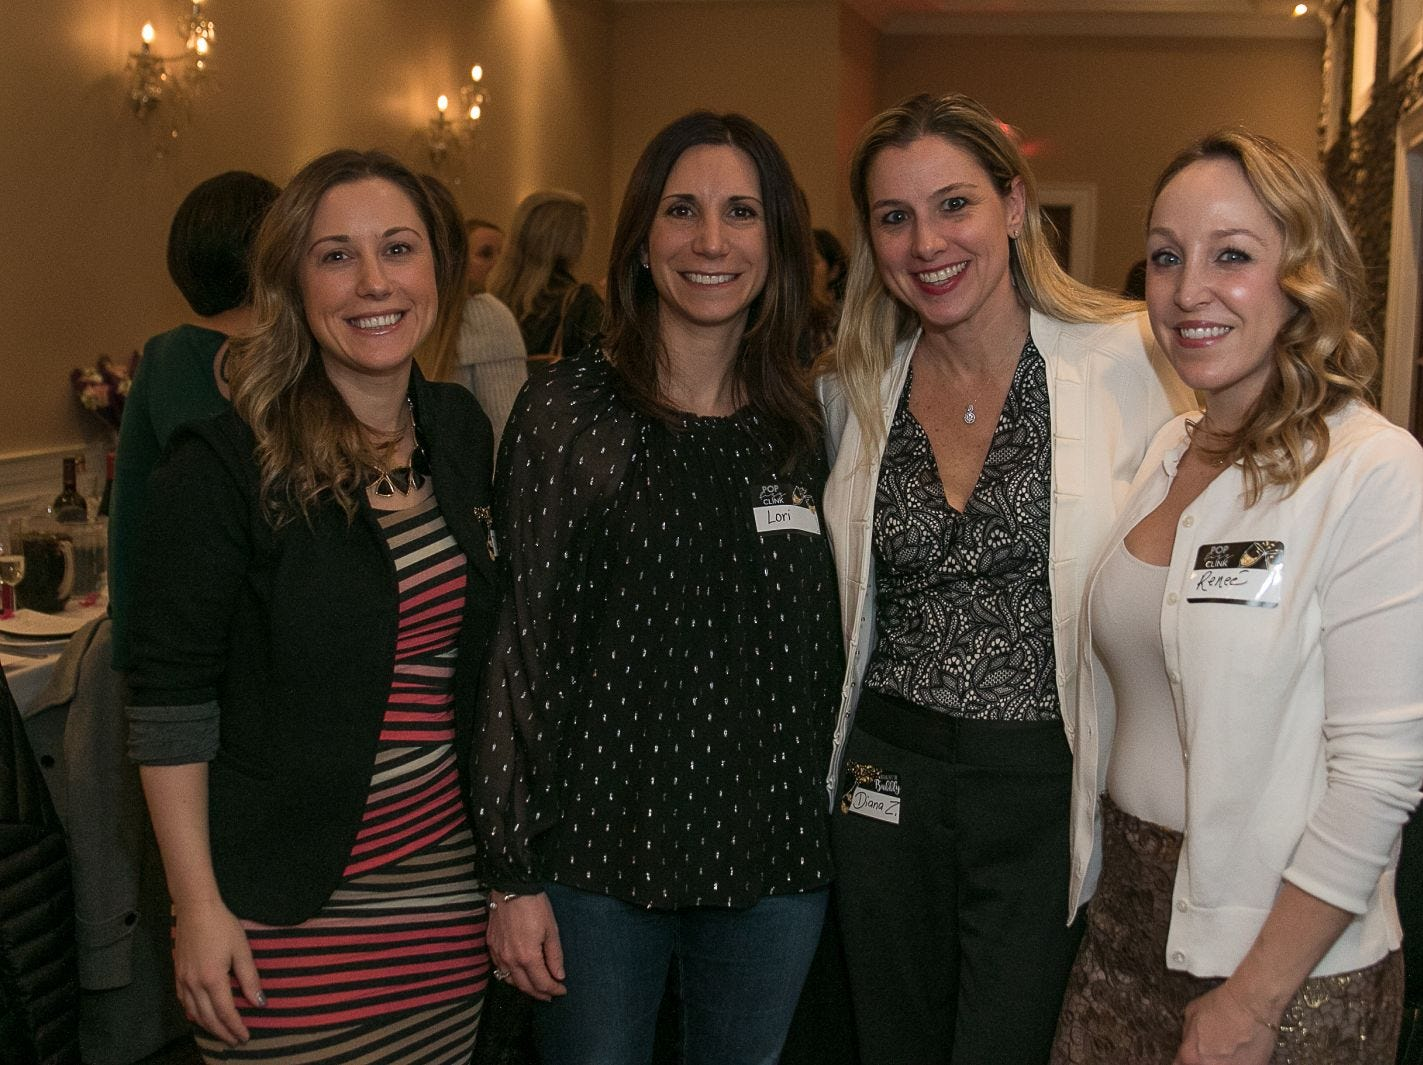 Diana Reinkraut, Lori Kramer, Diana Zuccaro, Renee Buzzelli. The Saddle River Valley Junior Woman's Club held an inductee dinnerfor incoming members at Bellisimo Restaurante in Montvale. 01/23/2019